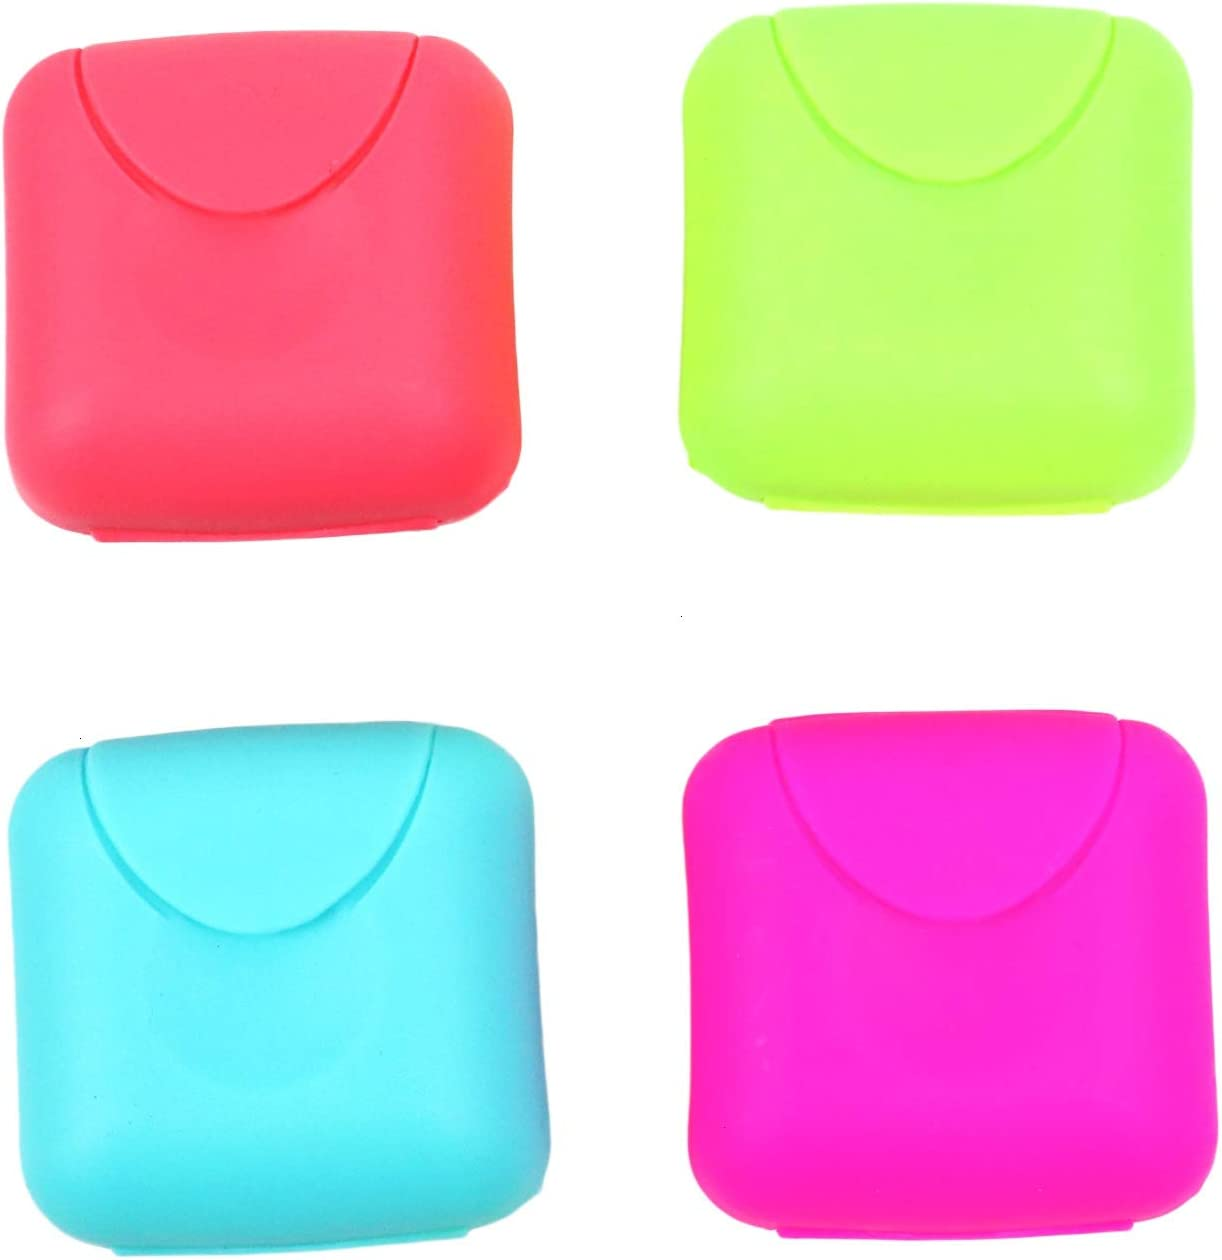 Pomeat 4PCS 4 Colors Small Size Plastic Soap Case, Travel Soap Case Mini Outdoor Hiking Camping Soap Dish Holder Case Container